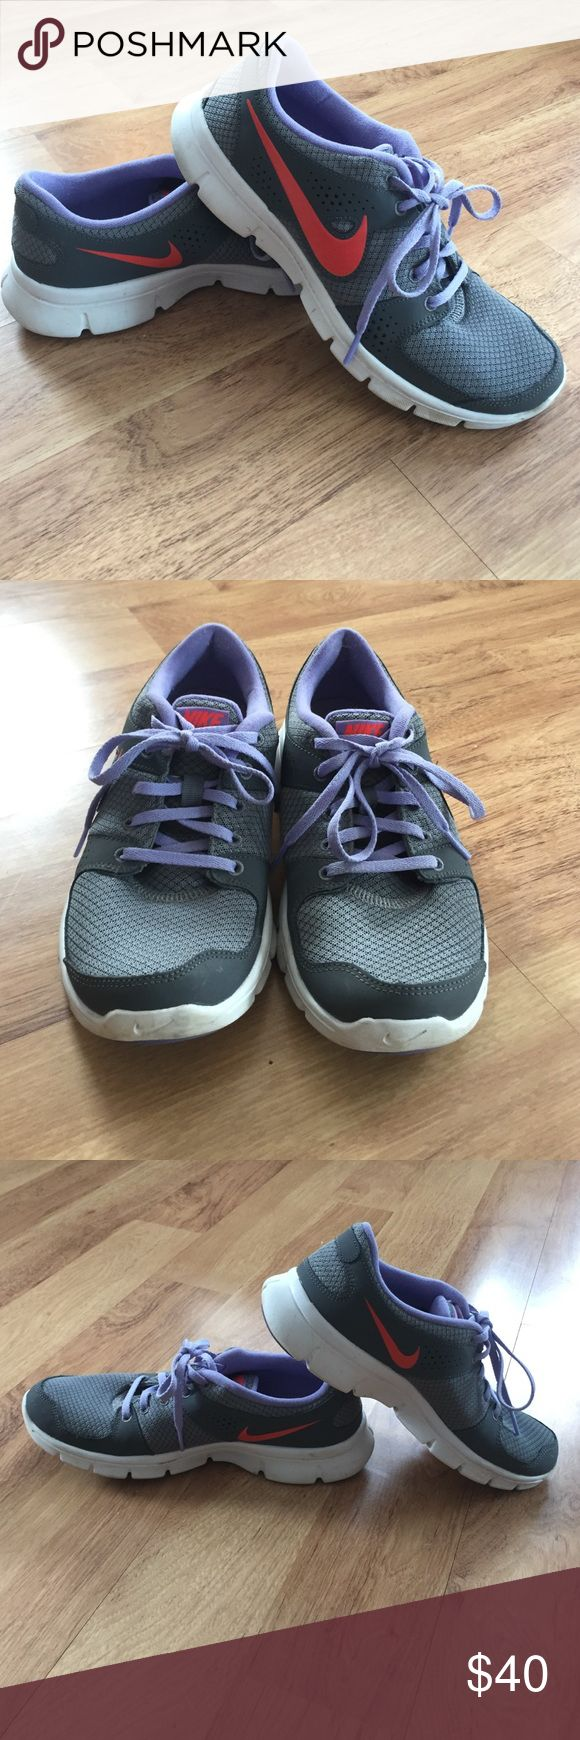 Awesome Nike Flex Experience running shoes✨ Awesome Nike Flex Experience running shoes✨lots of life left. Only worn a few times. Treads still great. Size 8.5 Nike Shoes Athletic Shoes